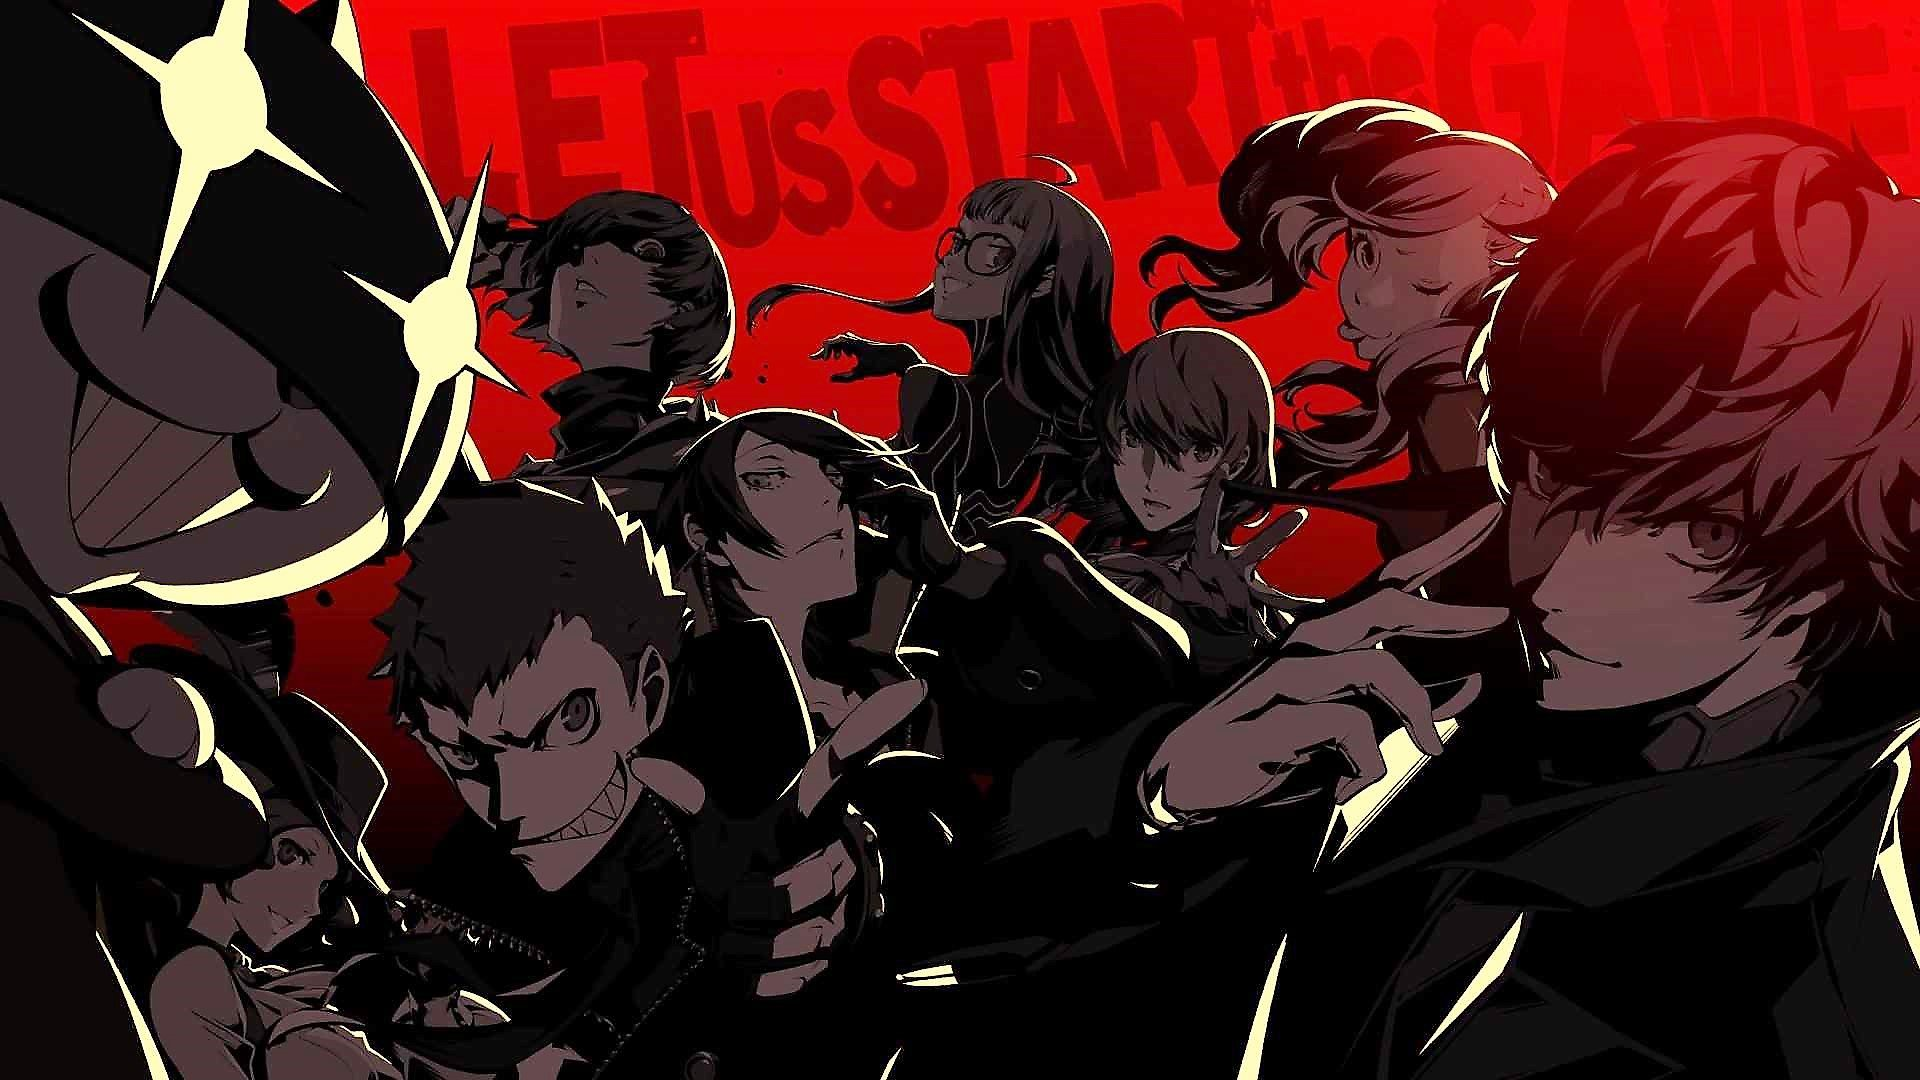 Persona 5 Difficulty Settings - What Does the Difficulty